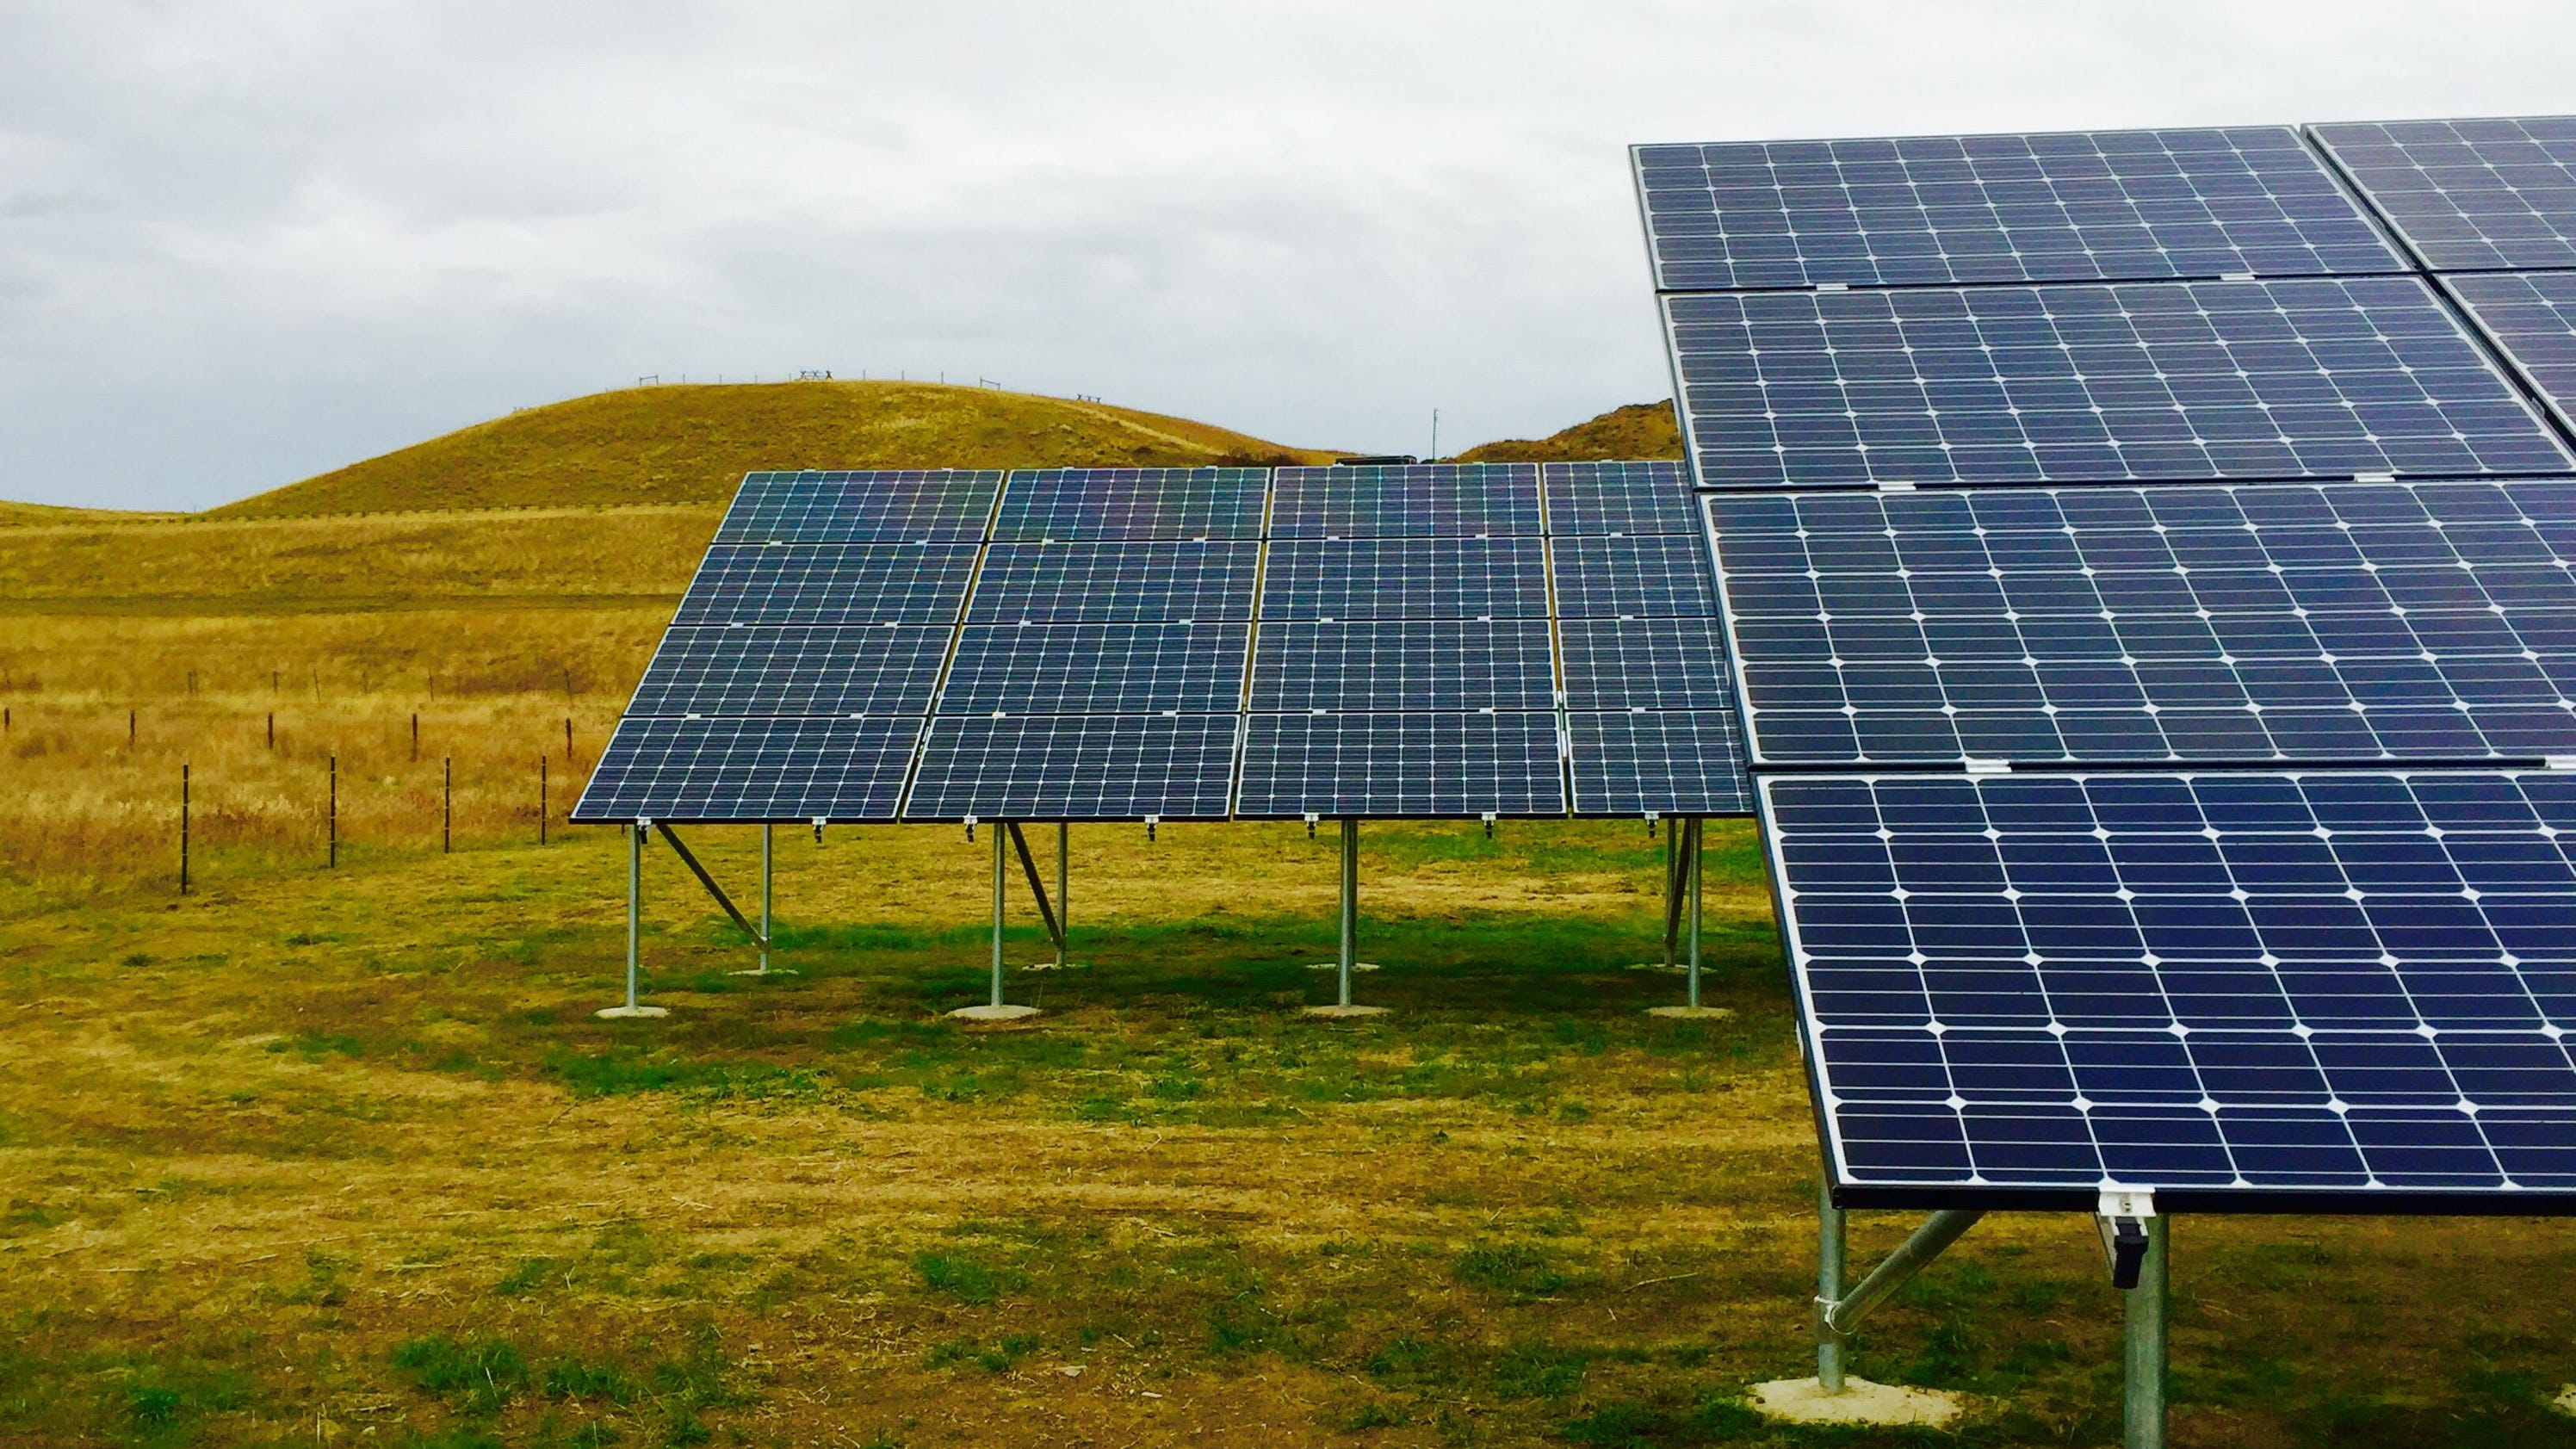 Kid power brings solar power to a Montana middle school